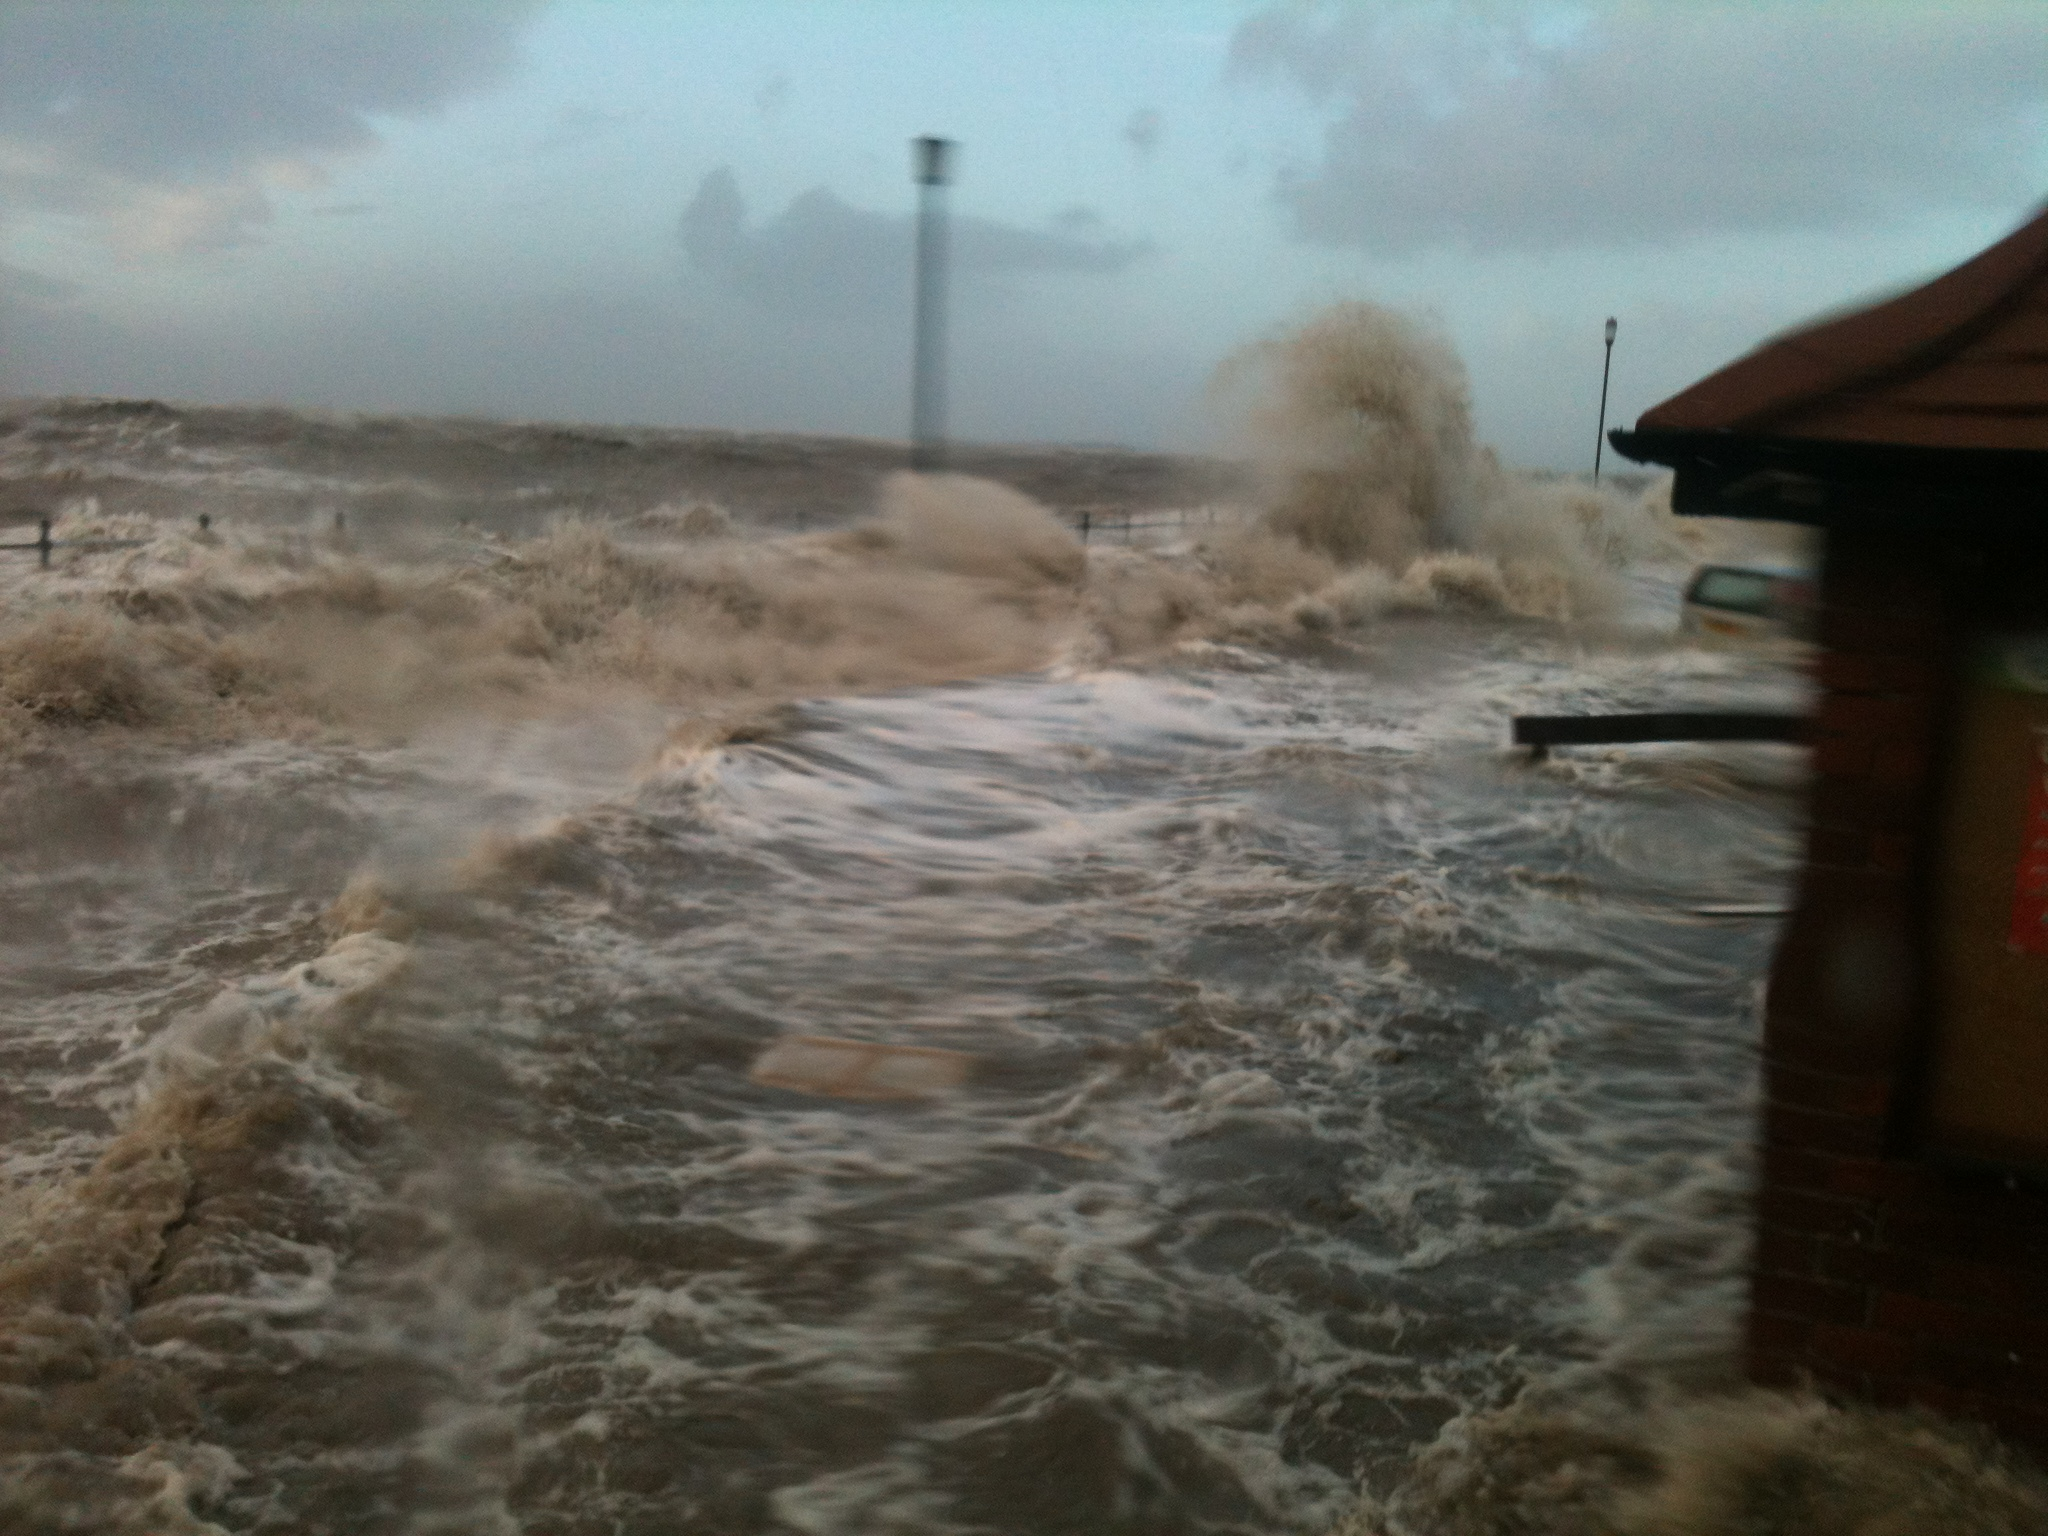 Wirral Globe: A photograph sent in by staff at Tanskeys.